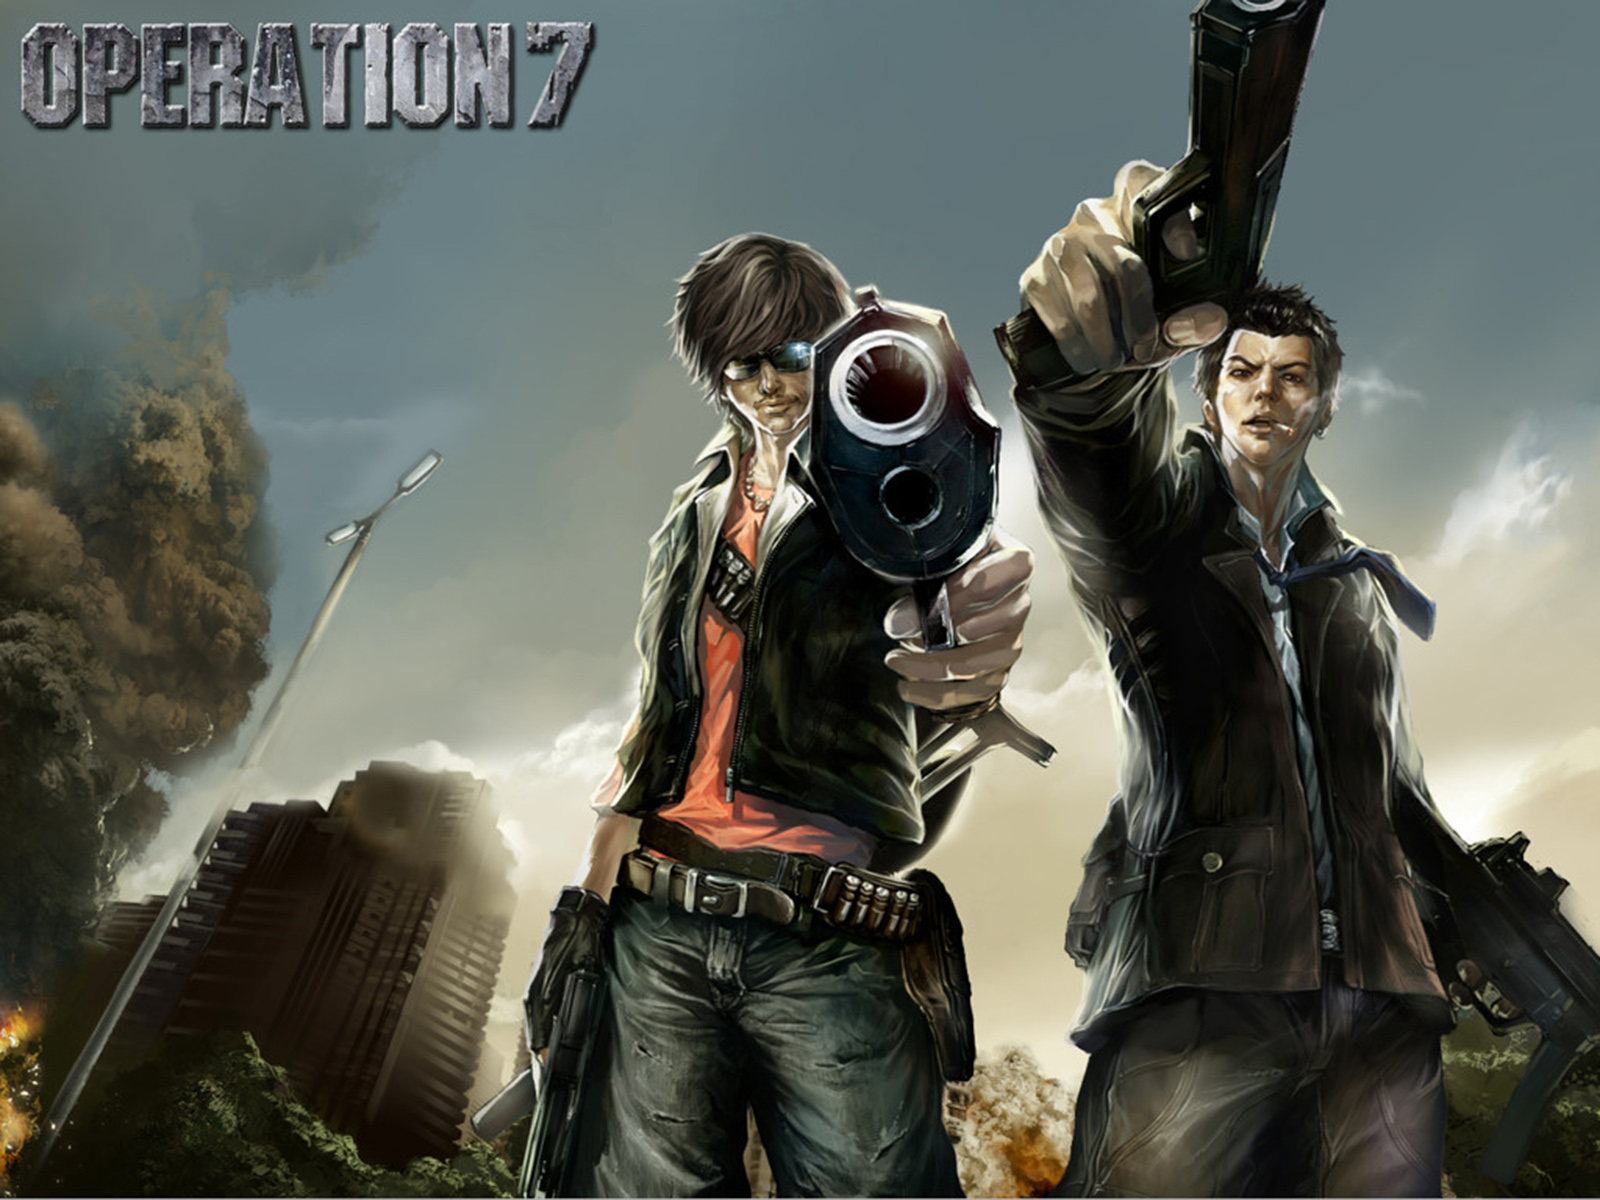 wallpaper dle juego operation 7